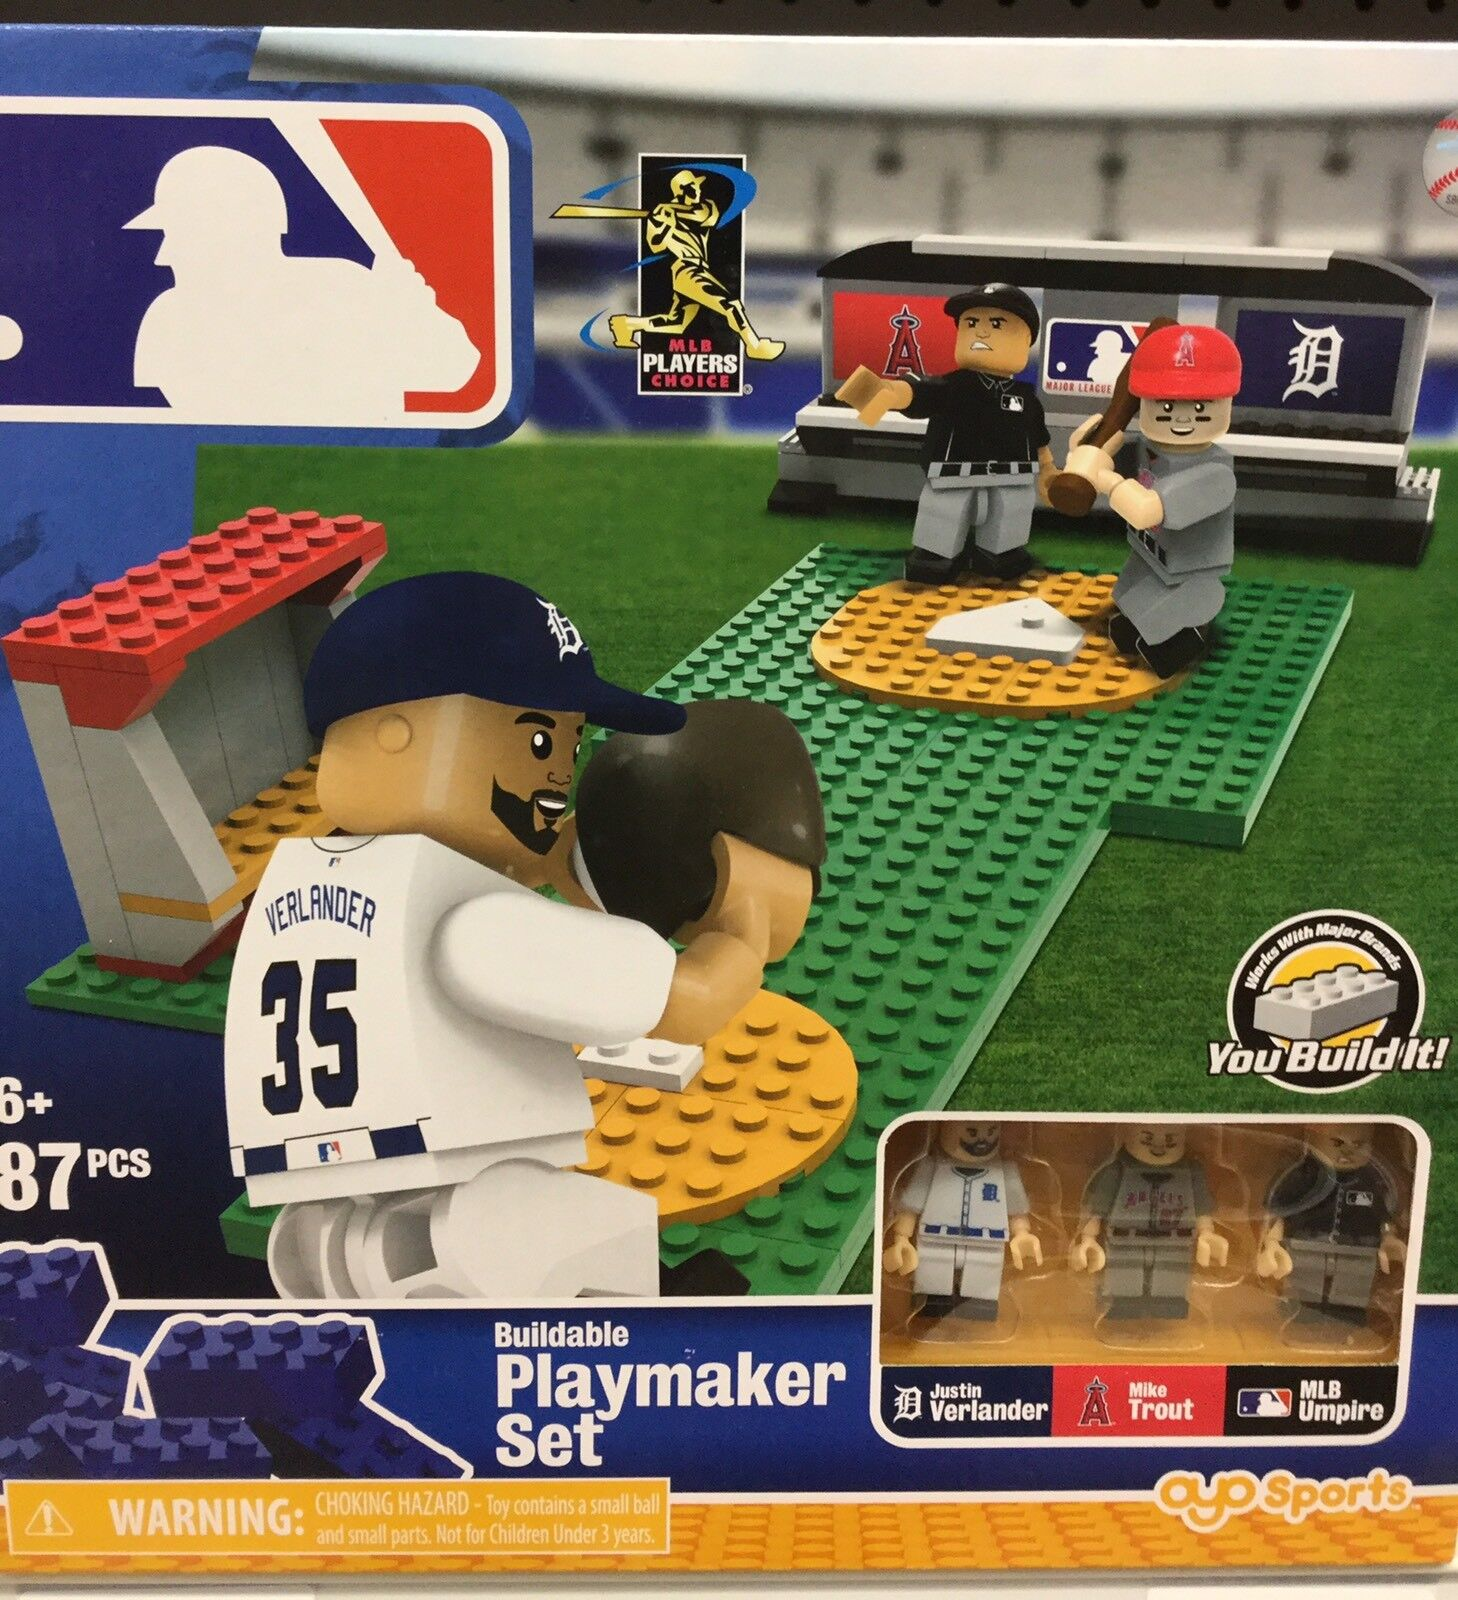 MLB LEGO Playmaker Set. Verlander Vs. Trout. Brand Nuovo. 87 Pieces